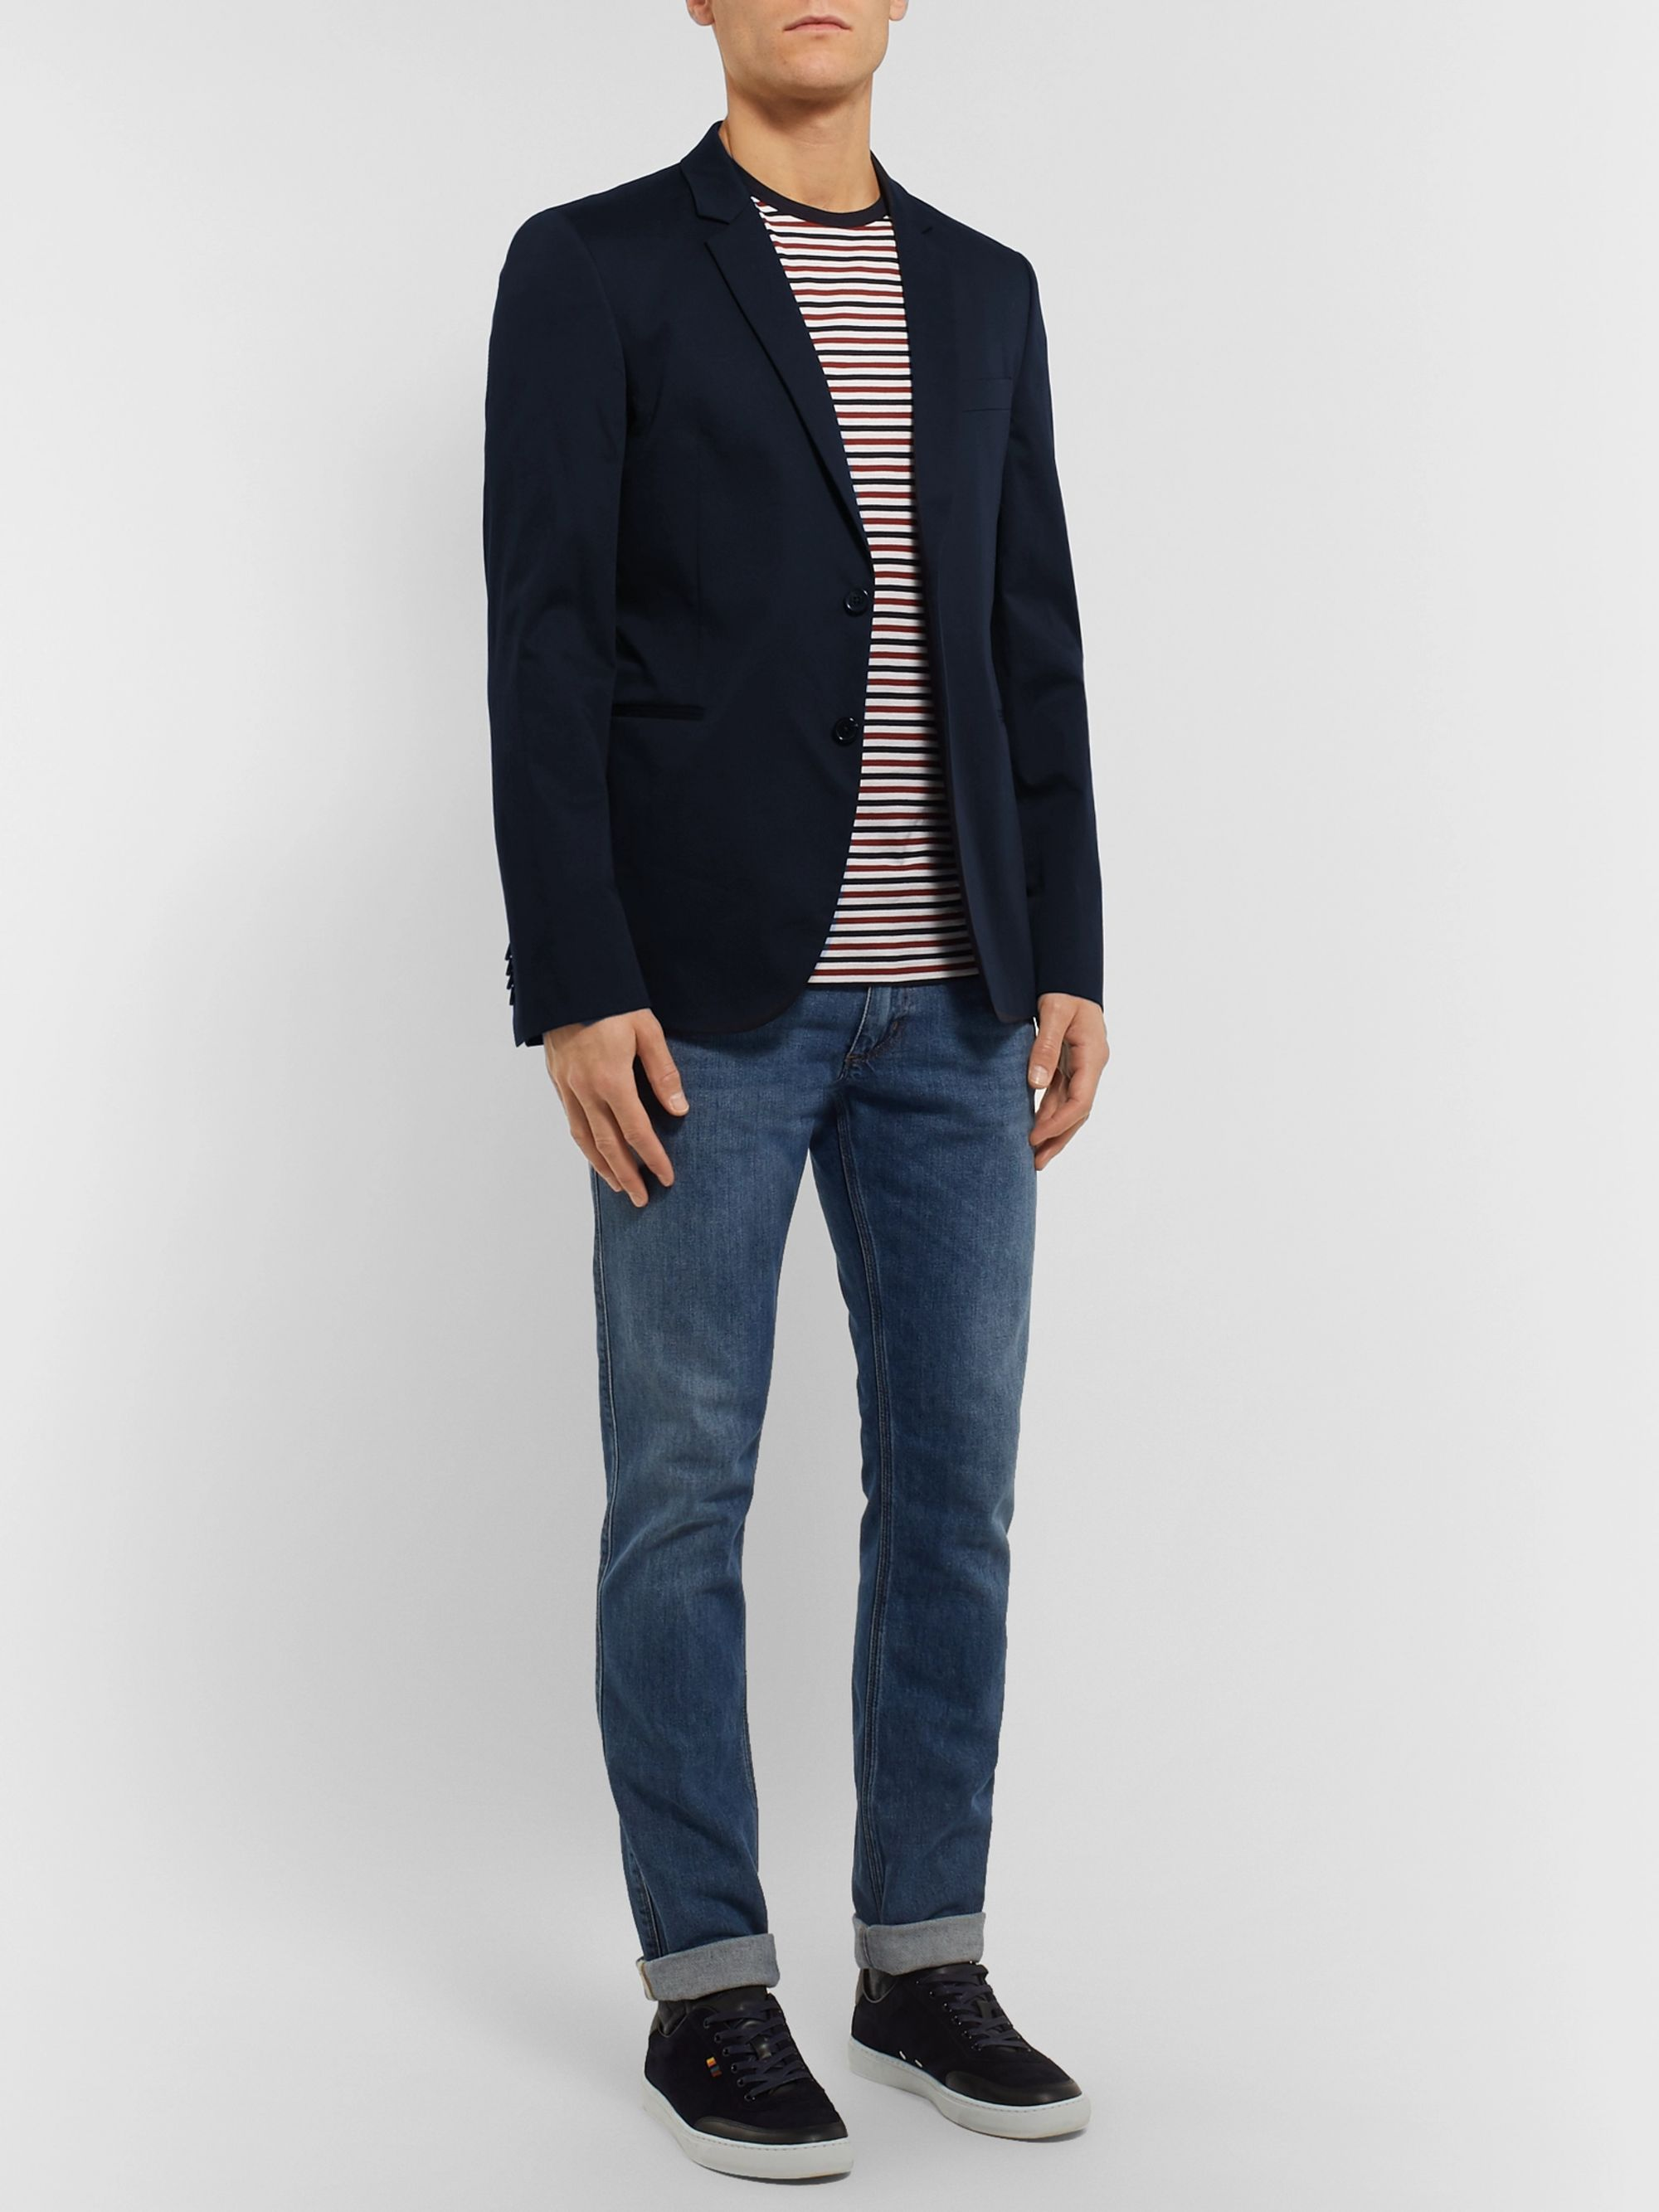 PS Paul Smith Navy Cotton-Blend Suit Jacket